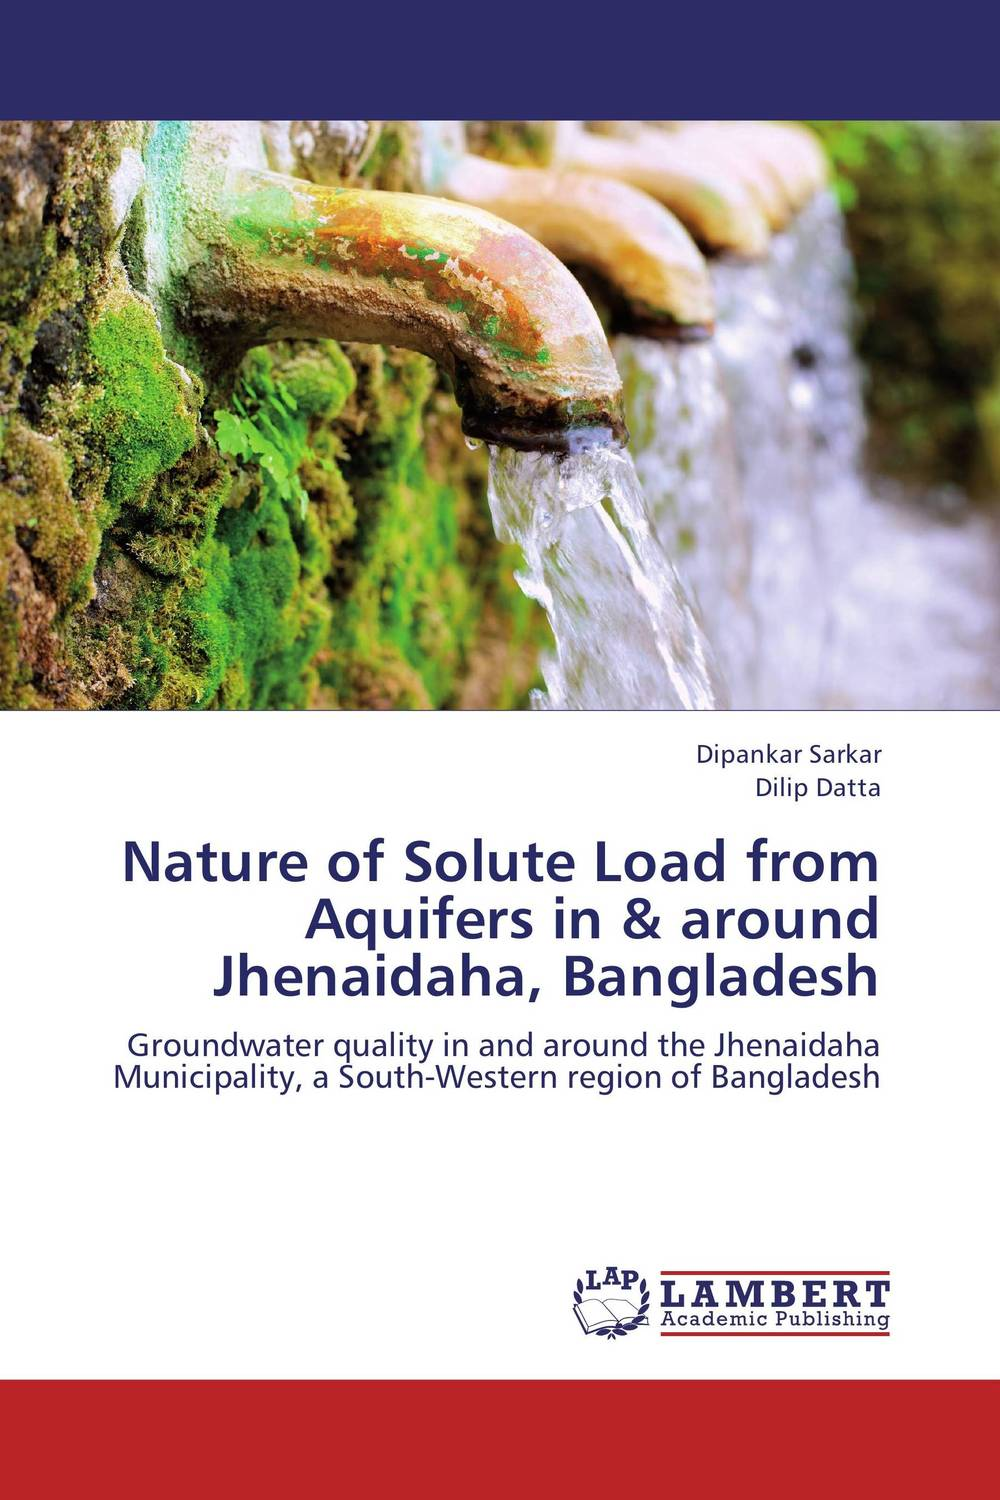 Nature of Solute Load from Aquifers in & around Jhenaidaha, Bangladesh фильтры помпы the source of water